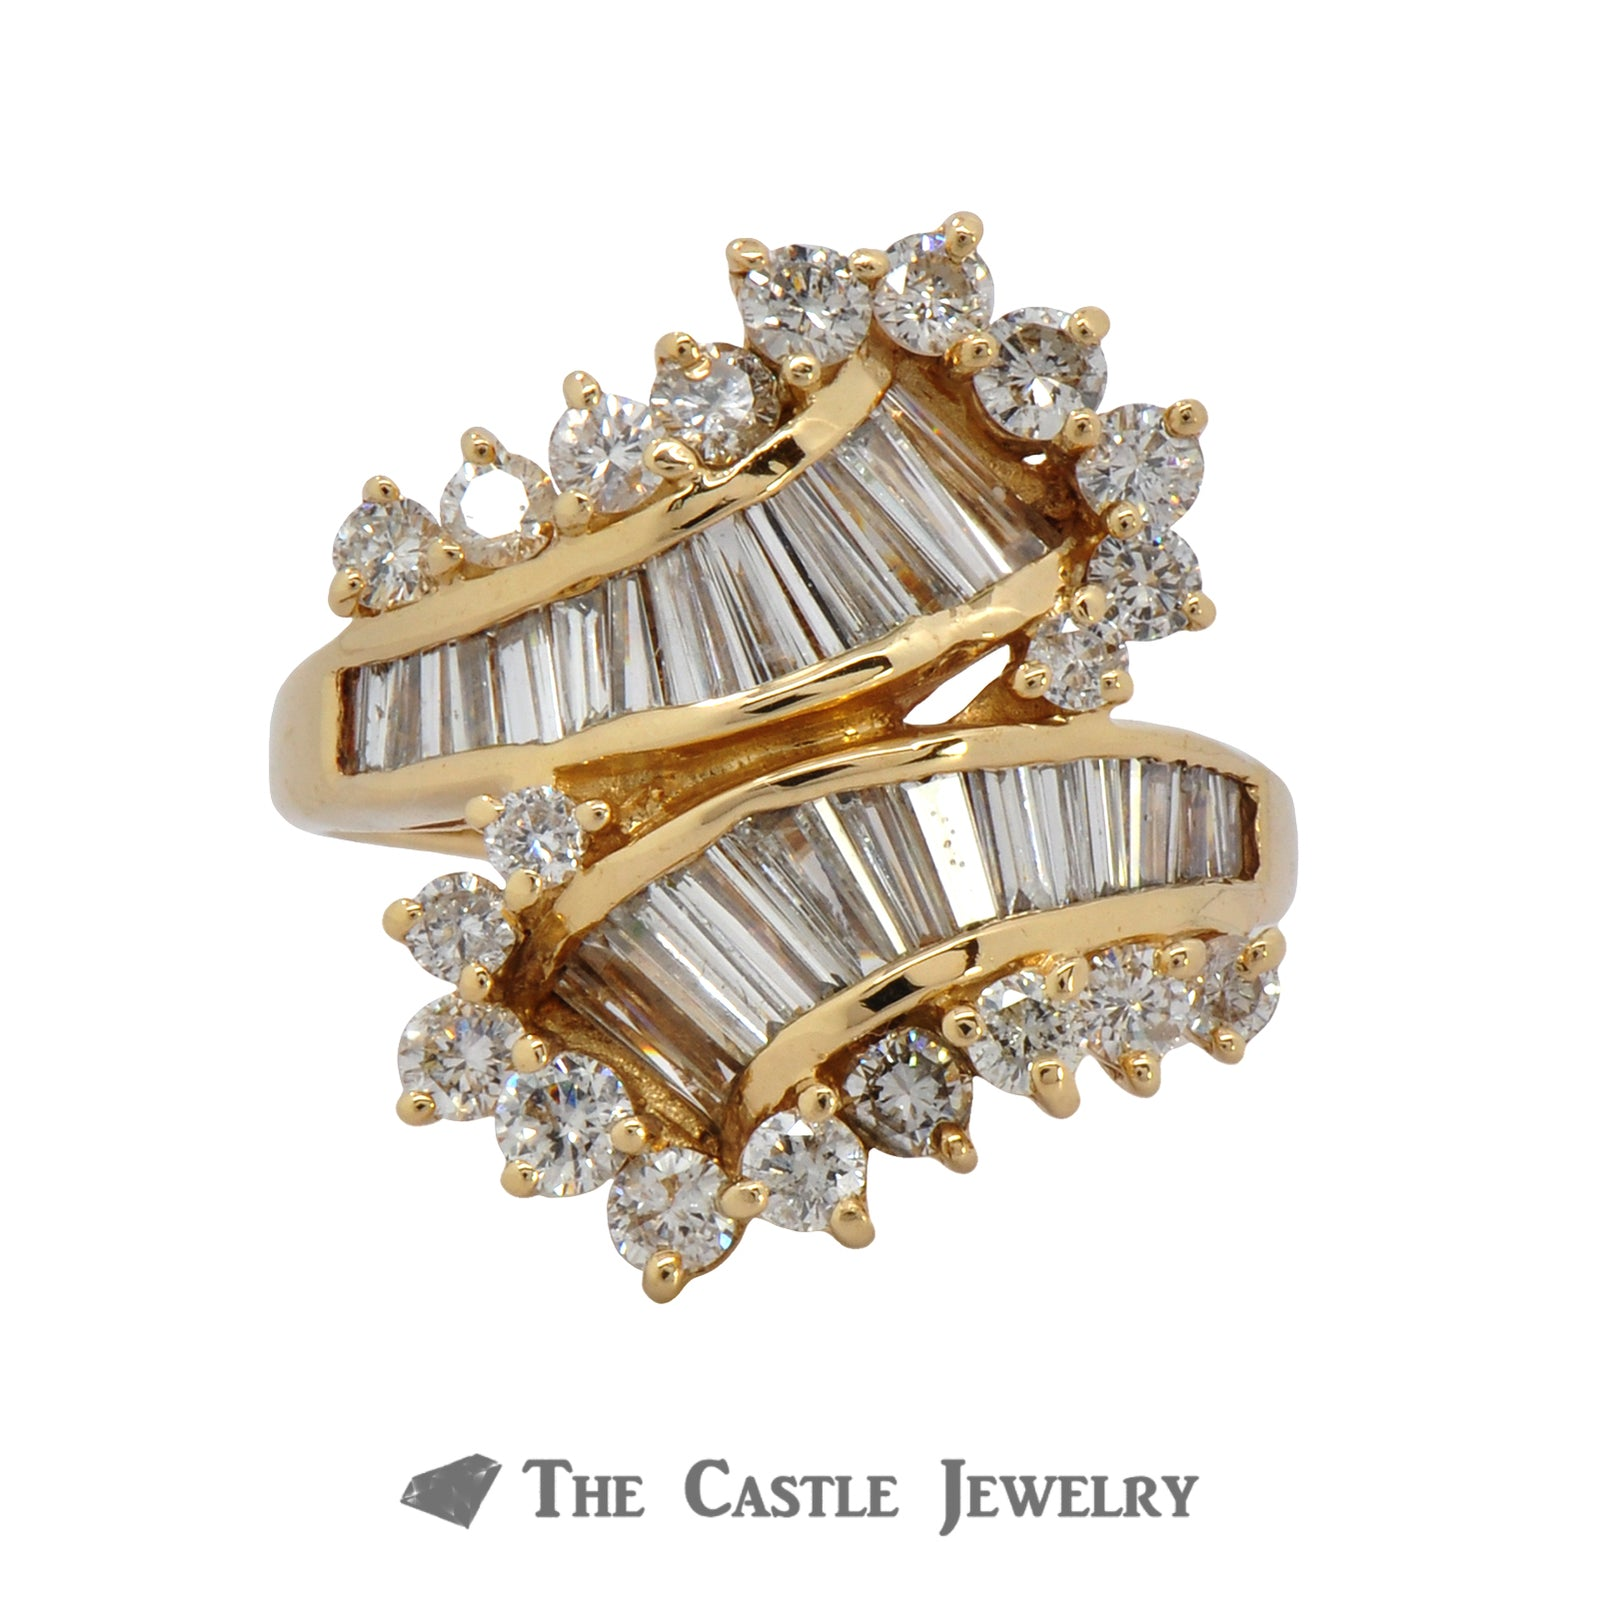 14K Yellow Gold Bypass Ring with Baguette and Round Brilliant Cut Diamonds